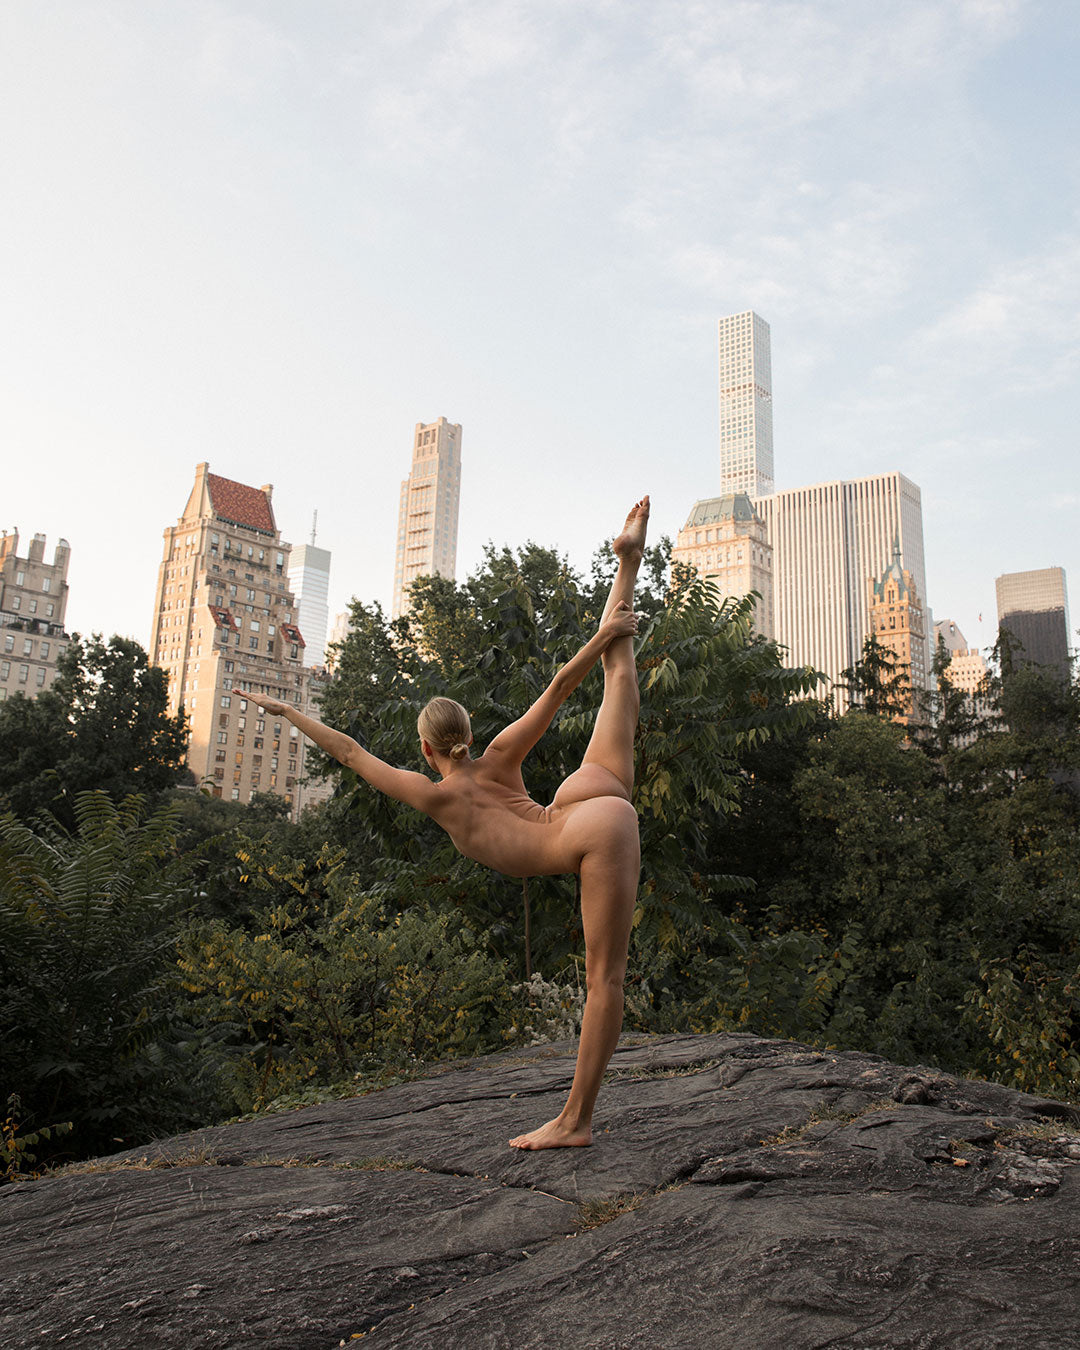 Woman posing nude in central park